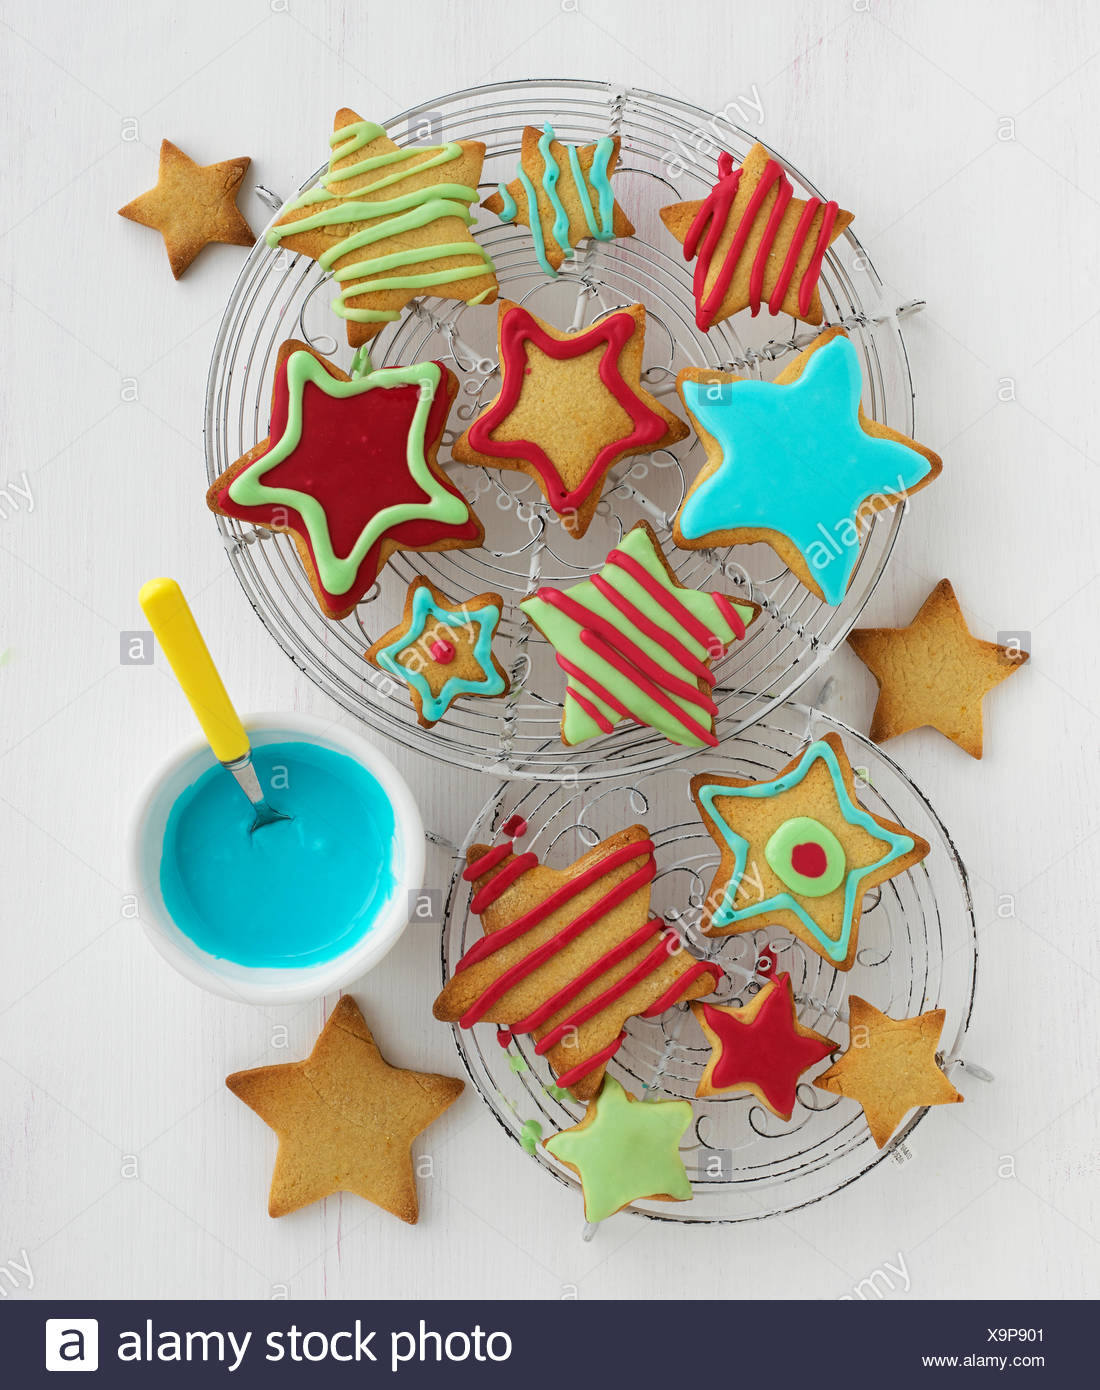 Star shaped biscuits with colored icing - Stock Image